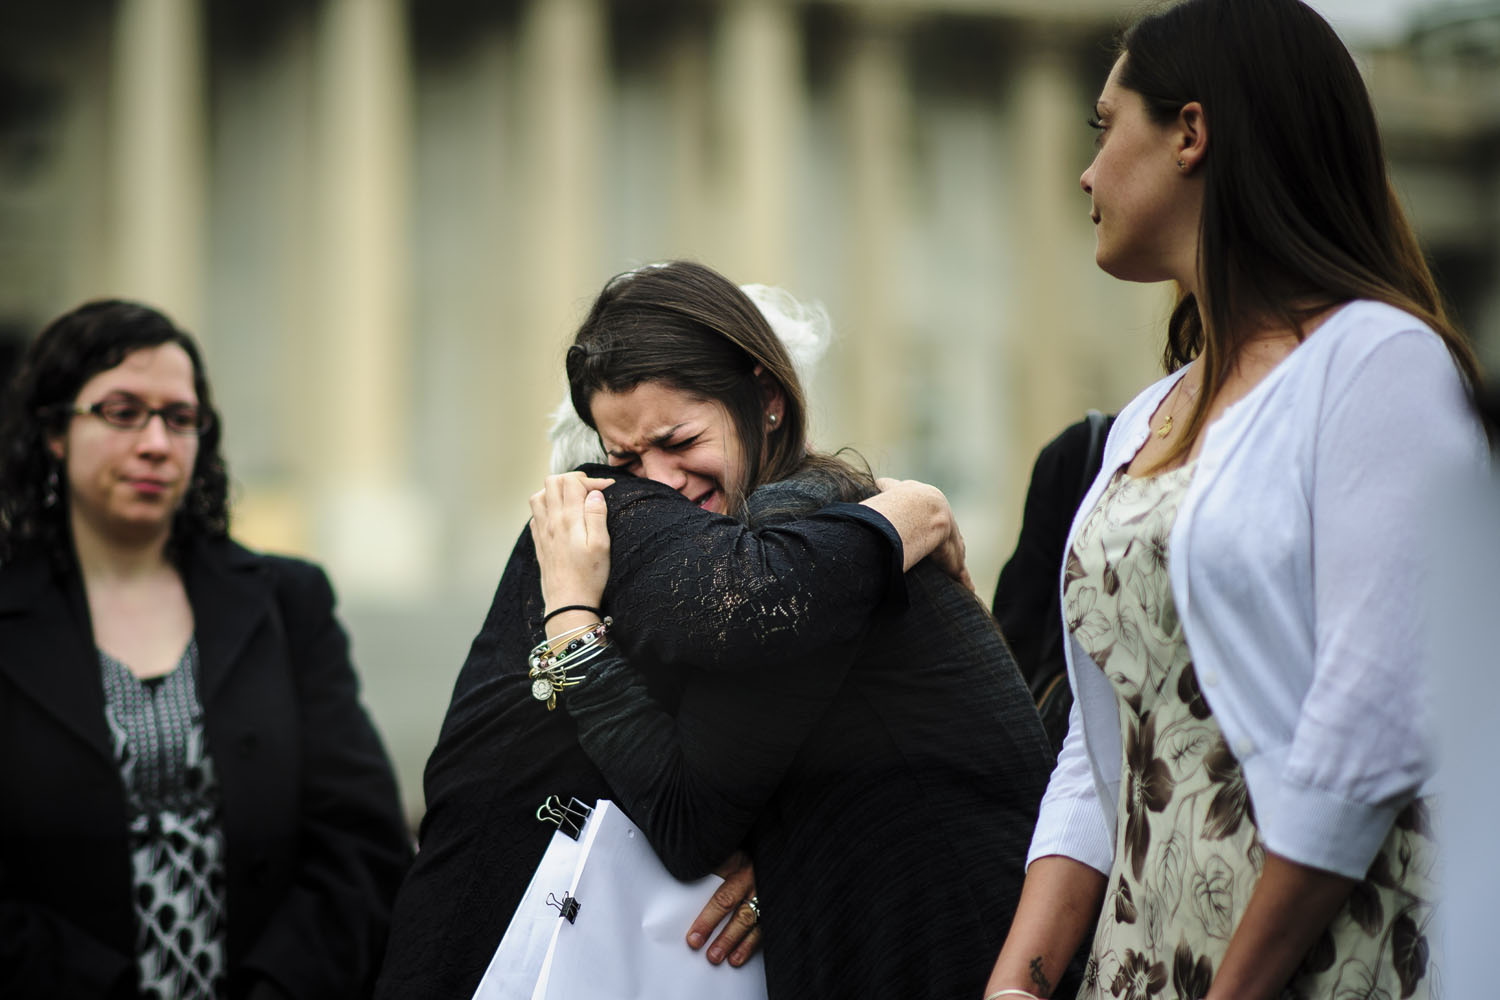 April 16, 2013. Carlee Soto, sister of Victoria Soto, a teacher killed at the Sandy Hook Elemenatry School, is overcome during a vigil outside of the U.S. Capitol.